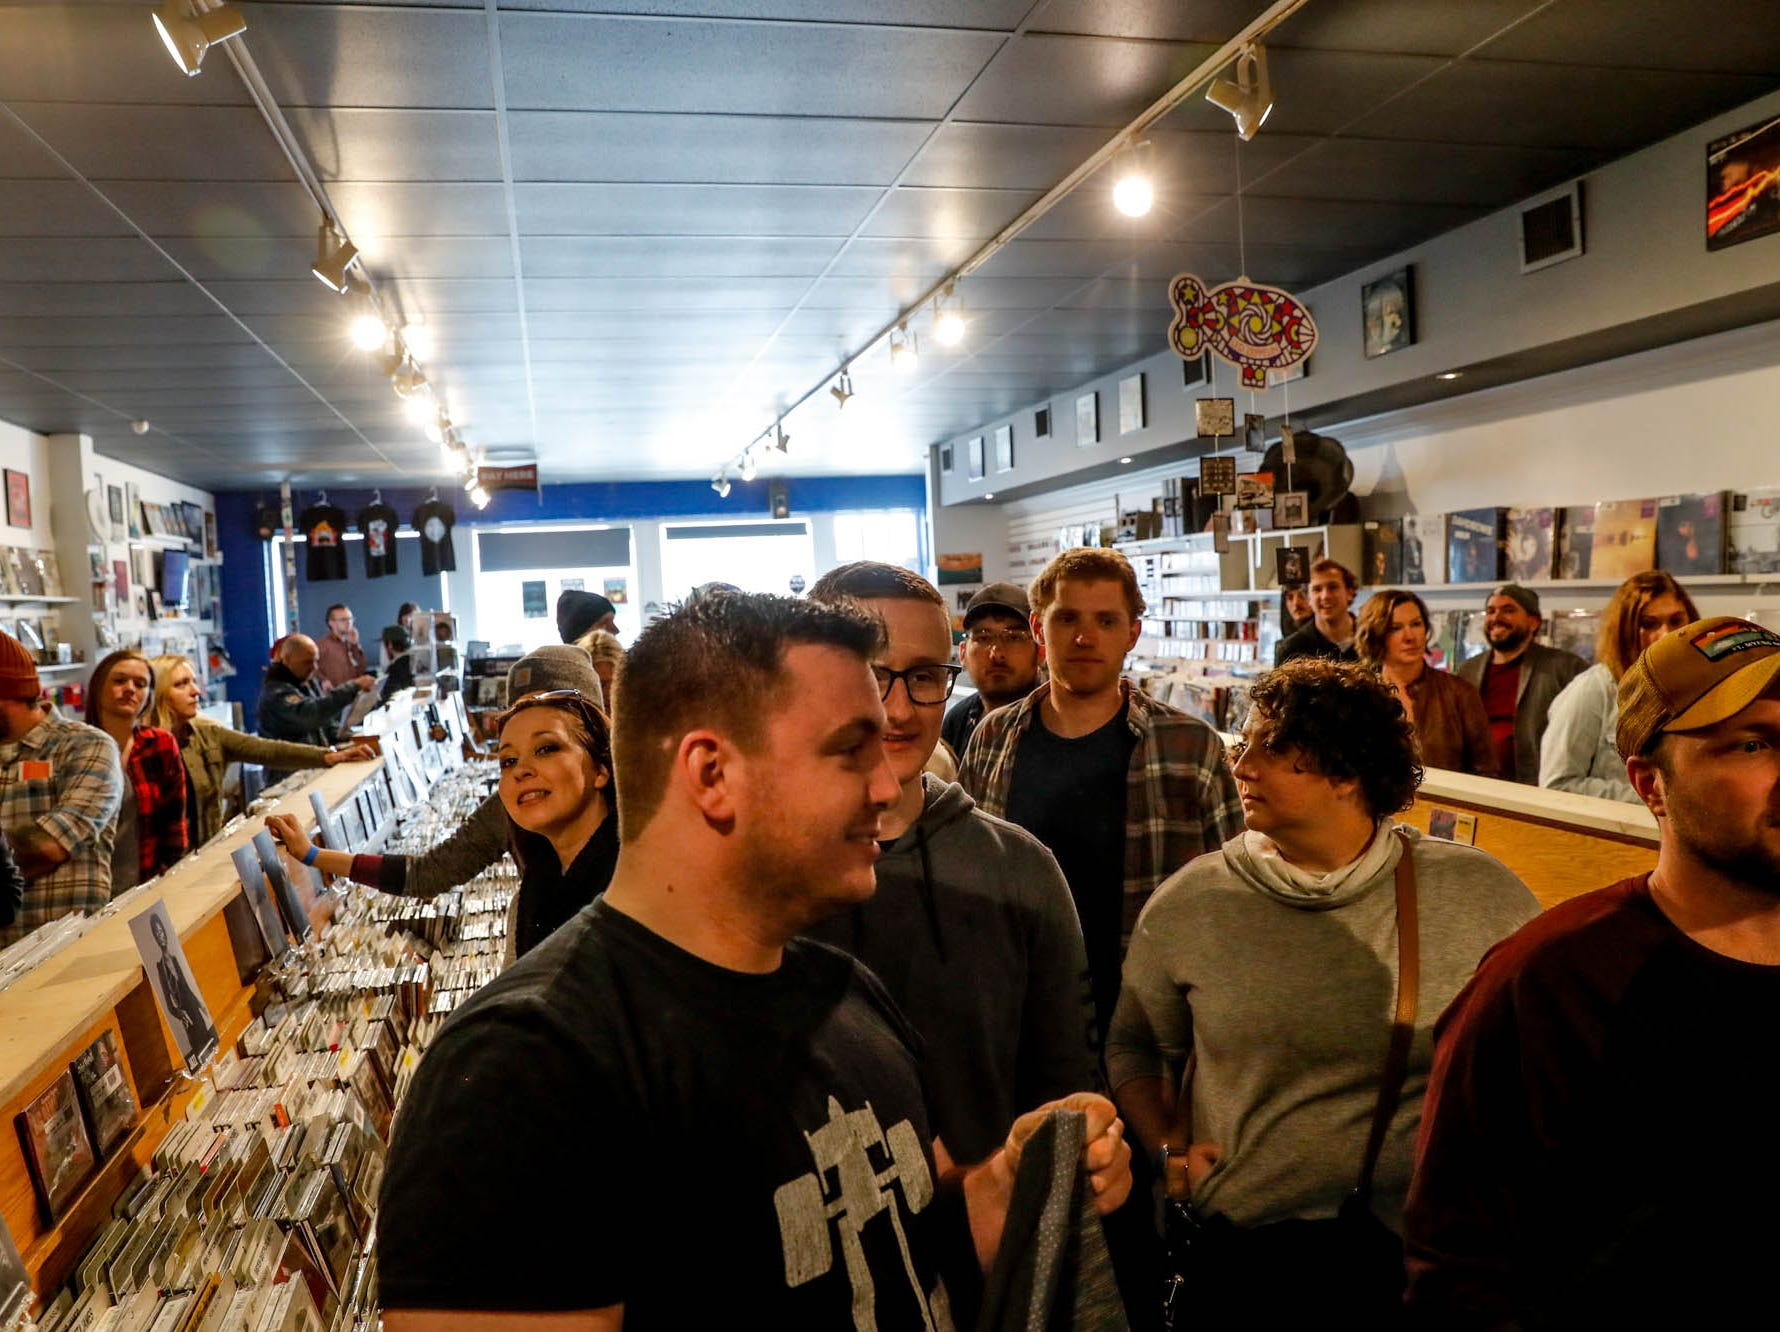 Mumford & Sons fans pack the store for the the band's special in-store appearance at Indy CD & Vinyl on Monday, March 25, 2019.